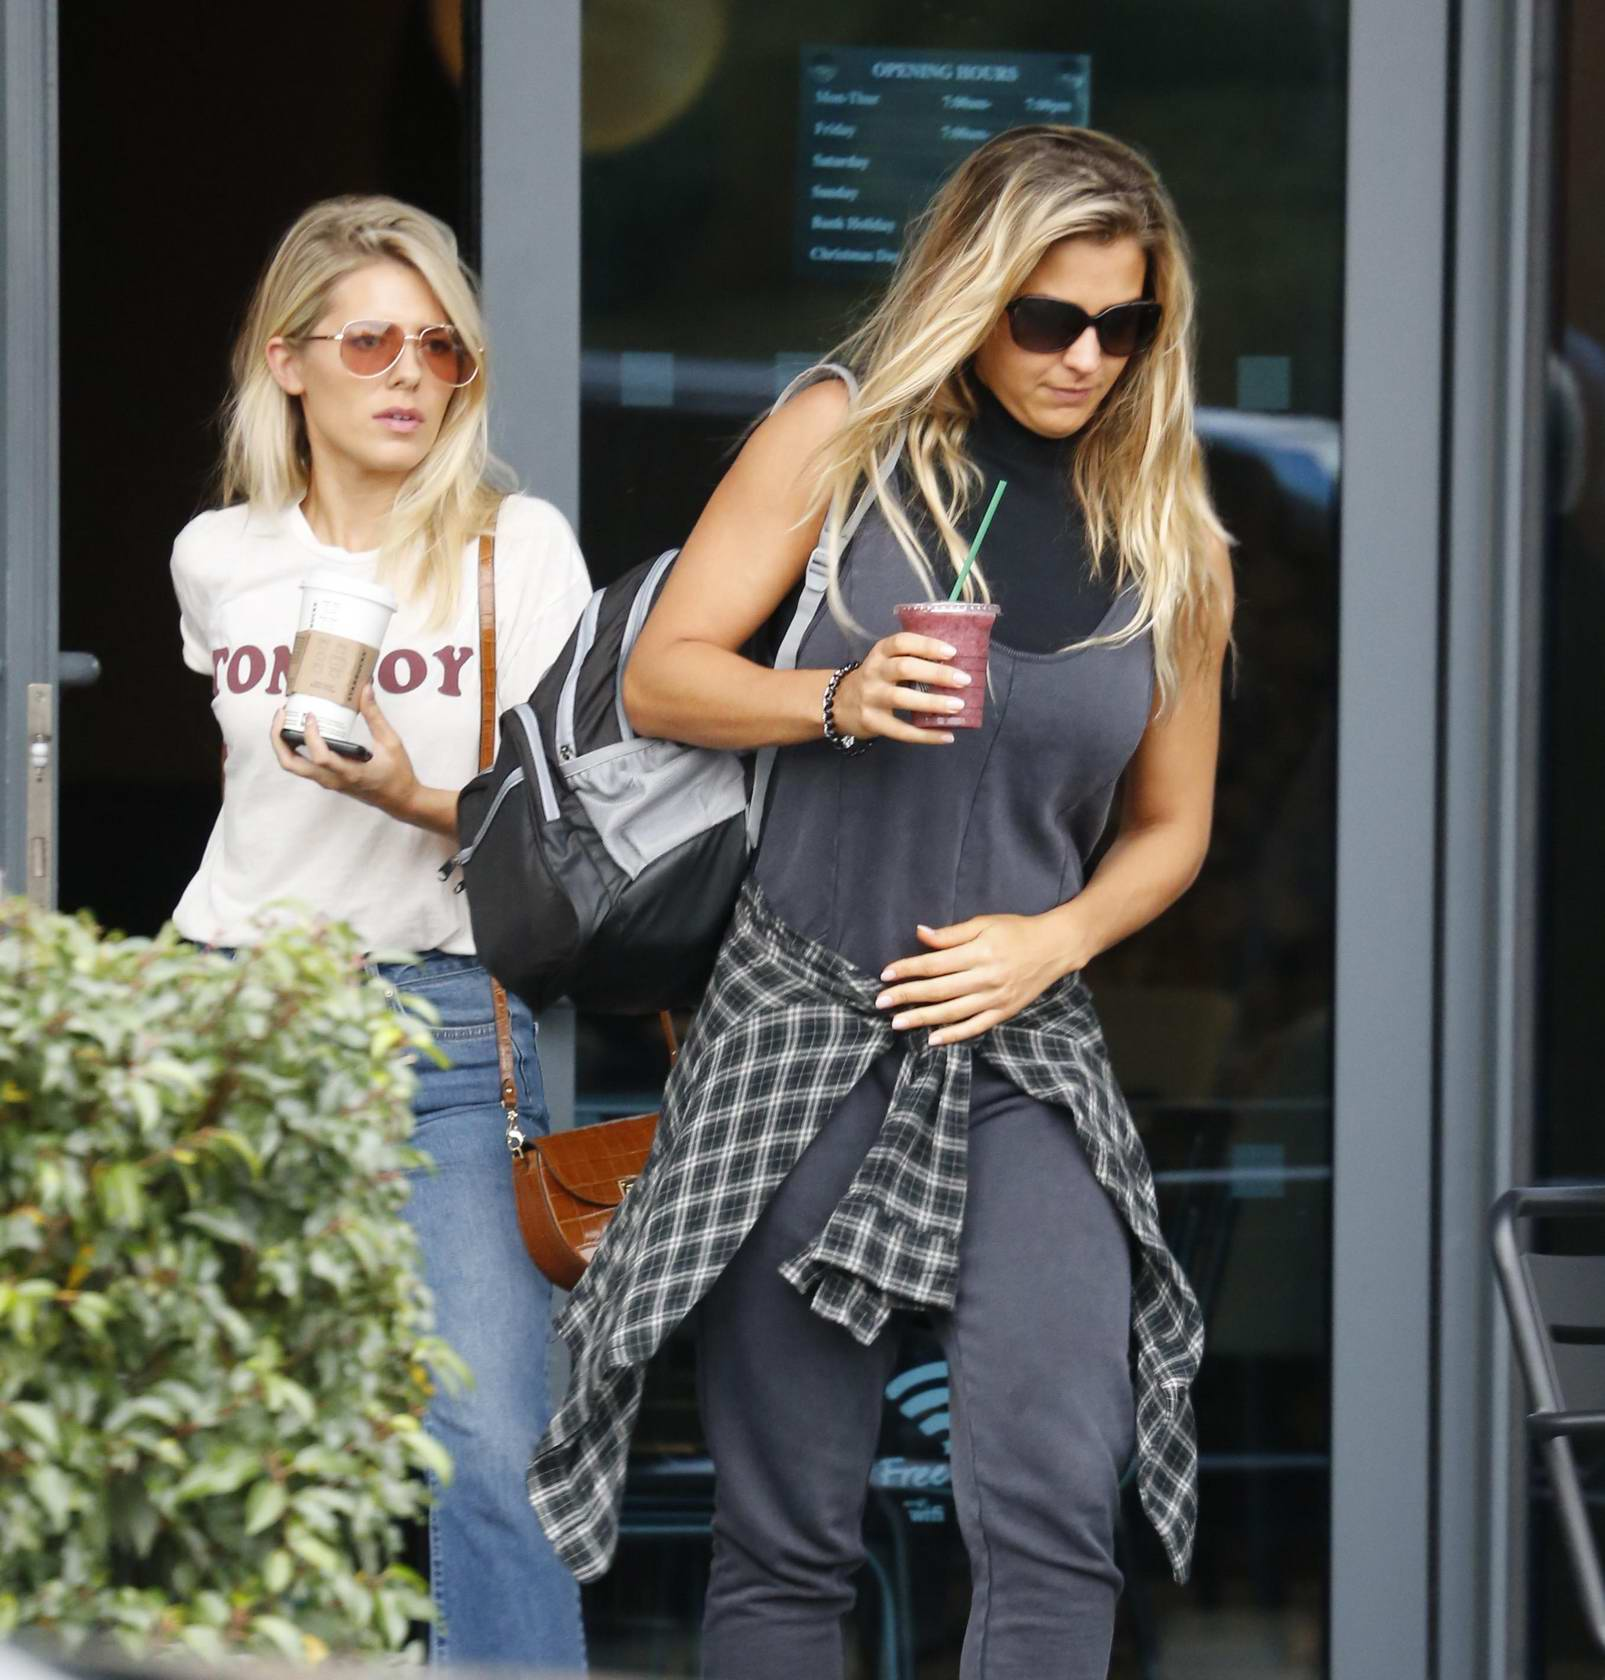 Mollie King and Gemma Atkinson leaving a hotel in London